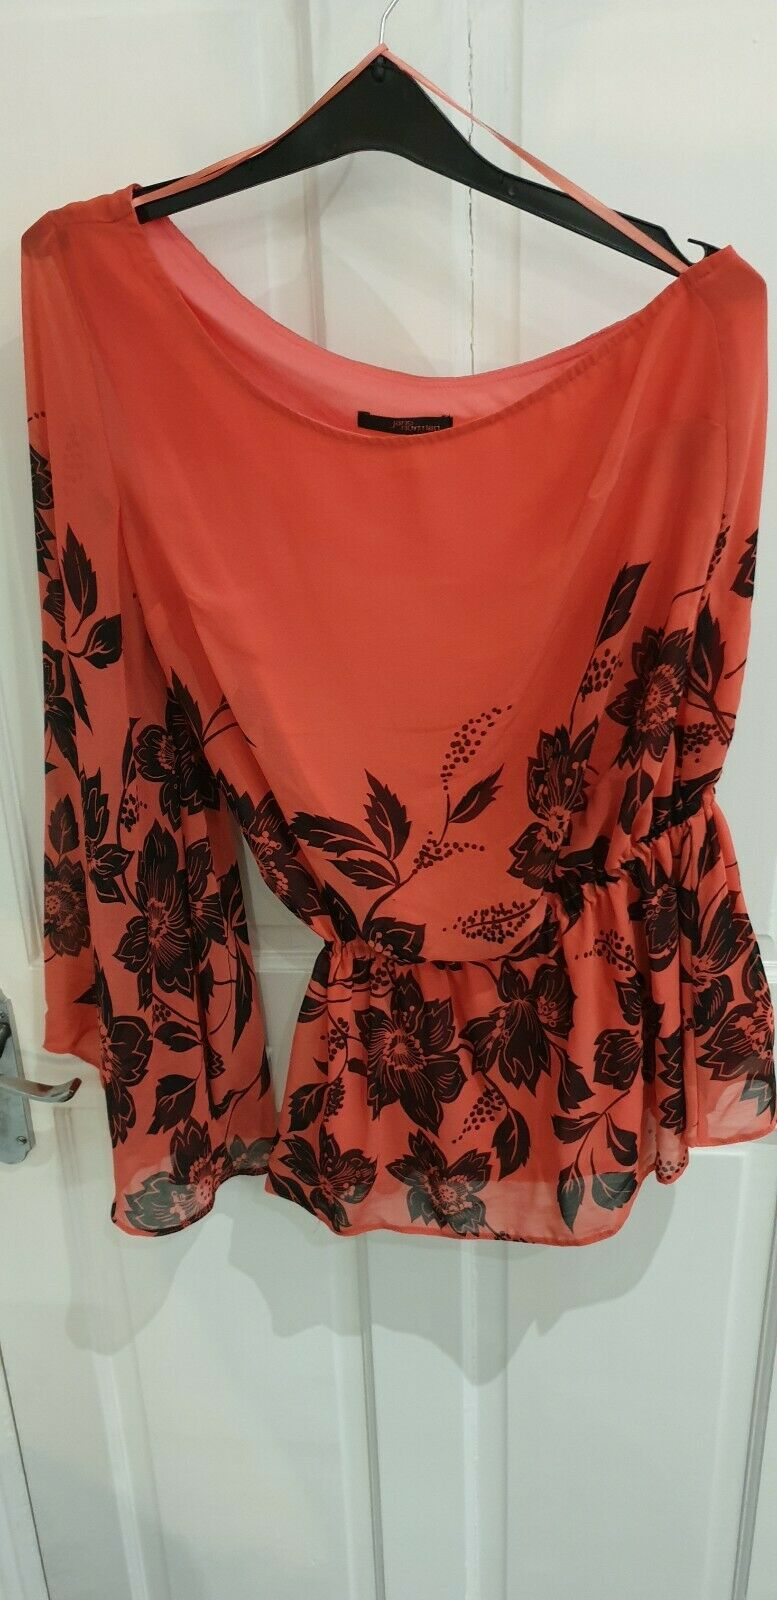 fdb90fa1dfcc Jane Norman 1 shoulder, bell sleeve floral top UK s10 blouse top 1 ...